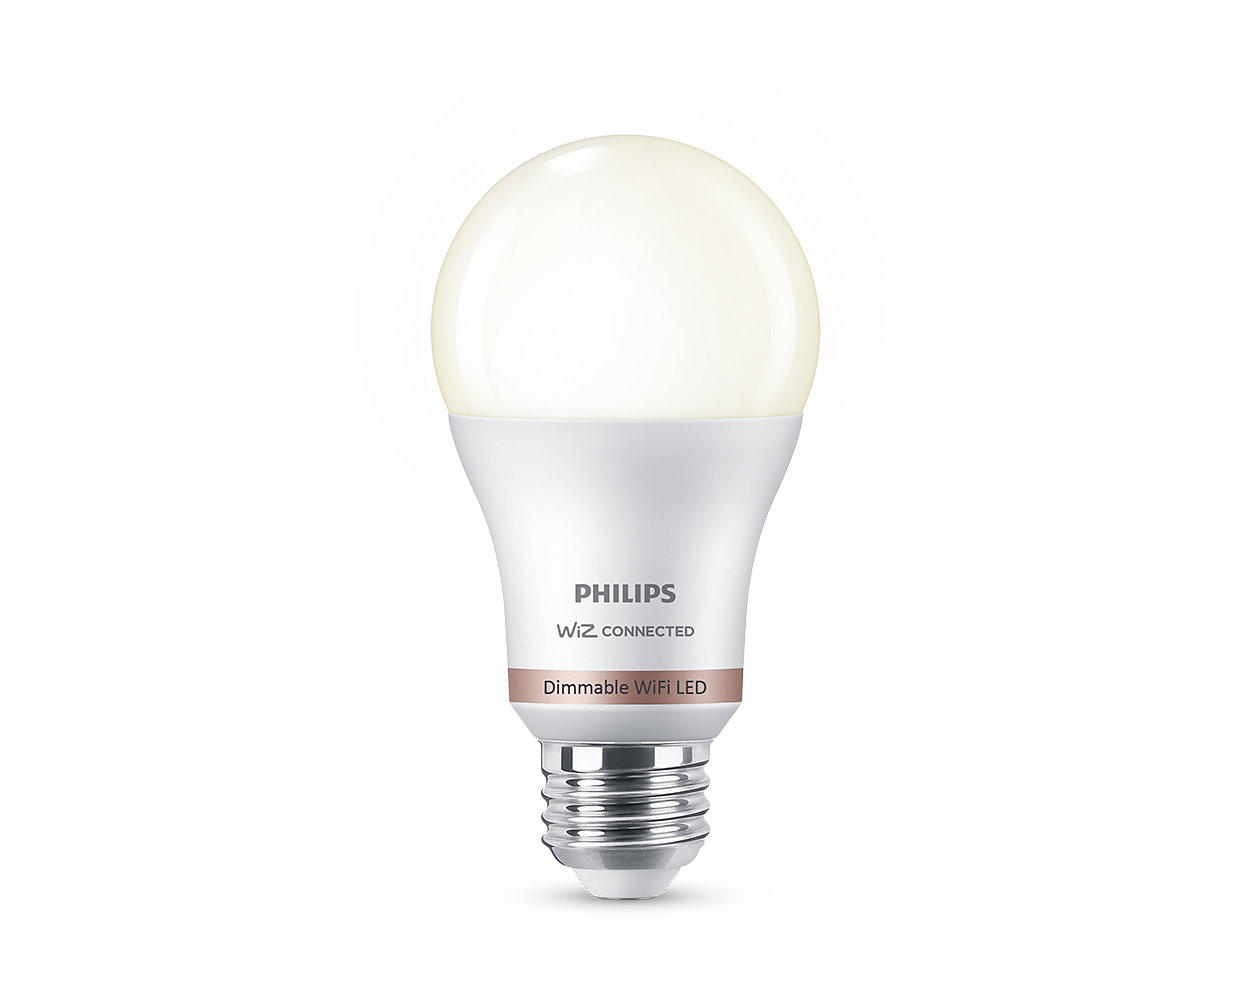 Easy-to-use smart dimmable bulb